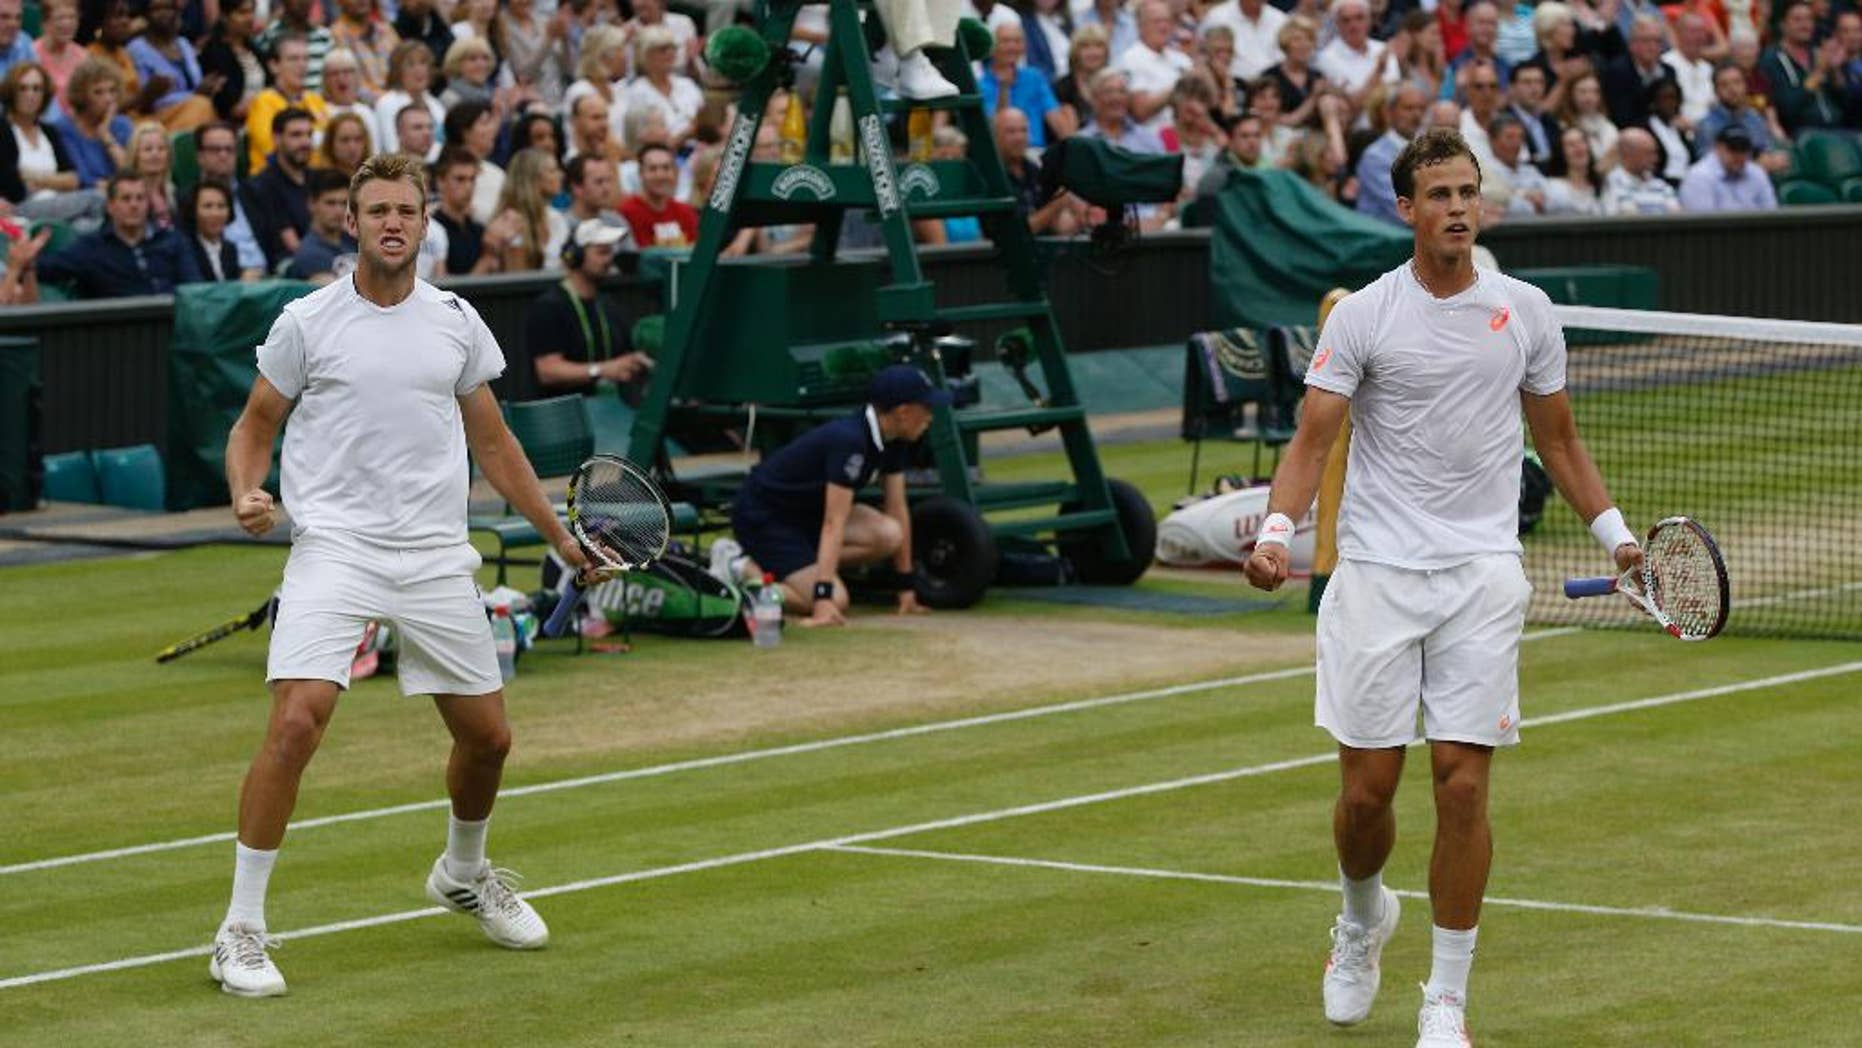 Vasek Pospisil of Canada, right, and Jack Sock of the U.S celebrate a point during the men's doubles final against Bob Bryan and Mike Bryan of the U.S at the All England Lawn Tennis Championships in Wimbledon, London, Saturday, July 5, 2014. (AP Photo/Pavel Golovkin)